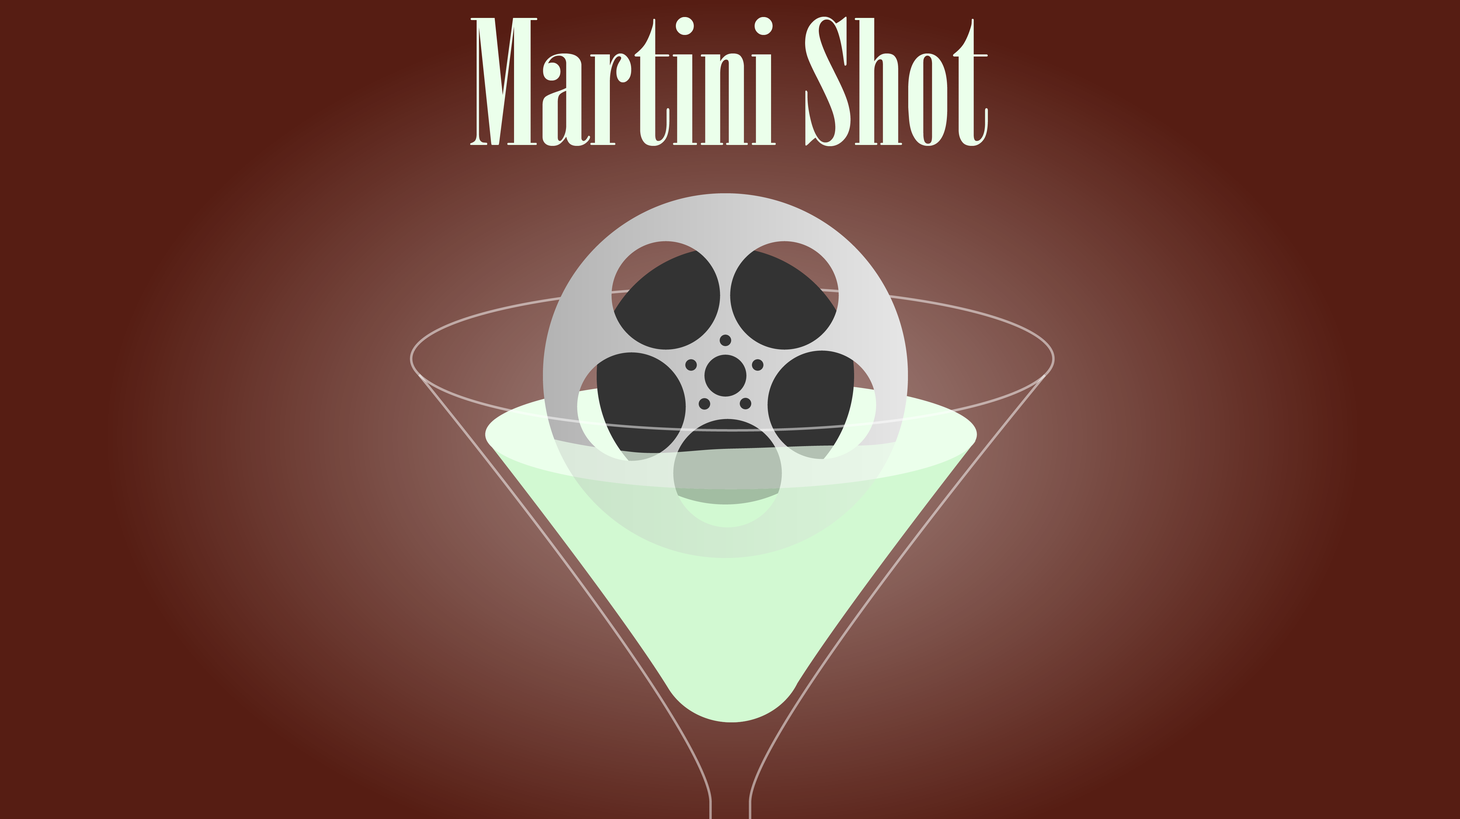 This is Rob Long and on today's Martini Shot I predict that the most popular and sought after audience demographic is going to be old people, because once they figure out how to subscribe to Netflix or Hulu or whatever, they're not going to want to…